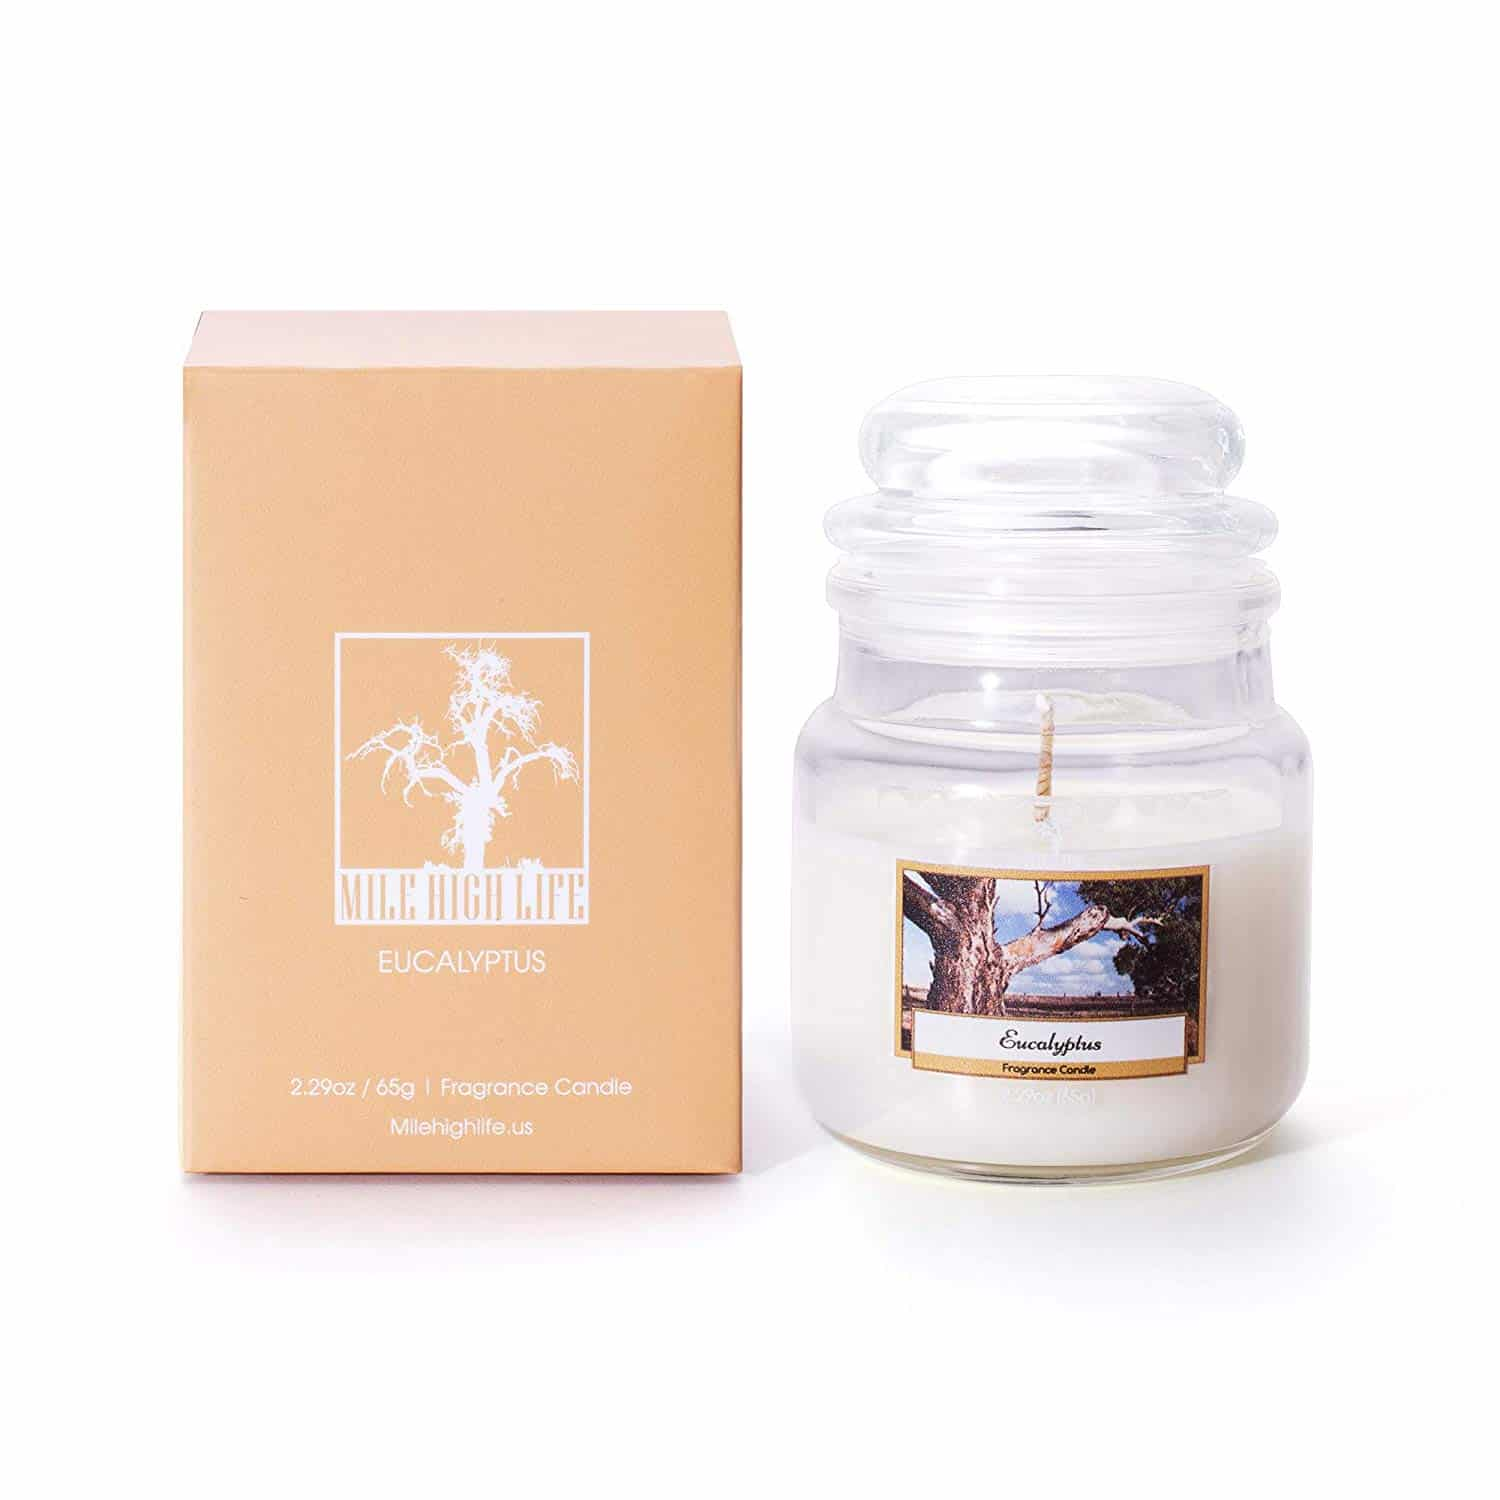 Mile High Life 2 in 1 Soy Candle